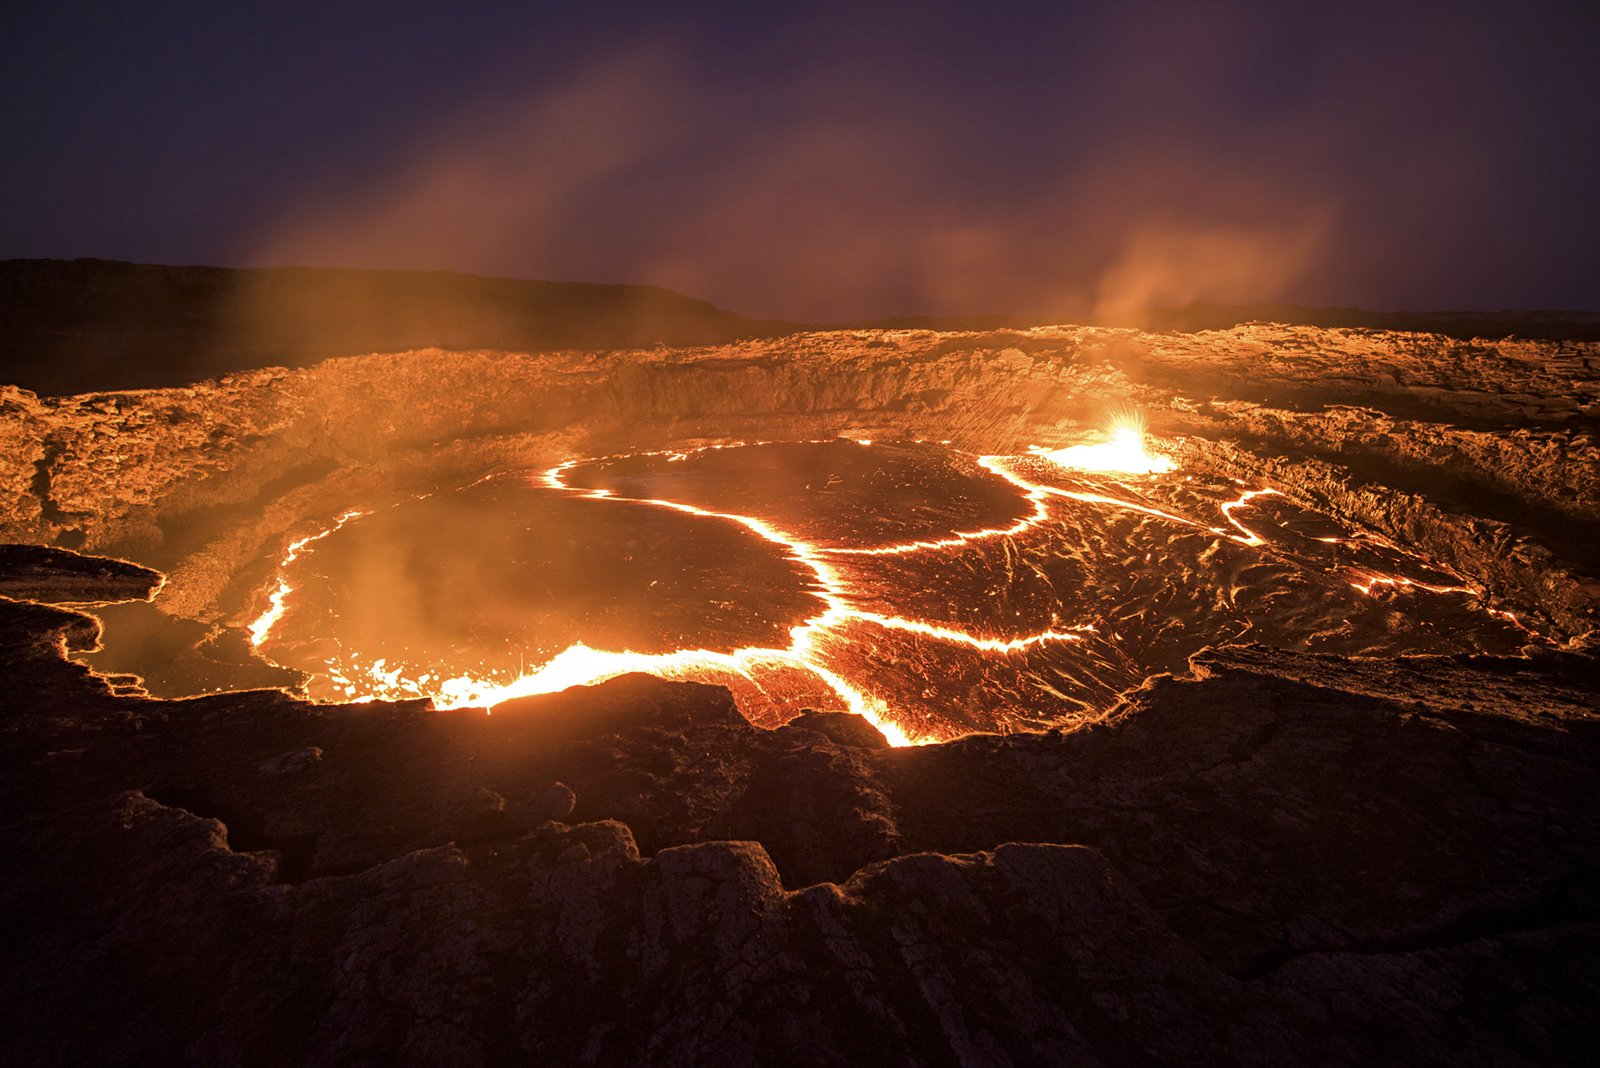 How to see the lake of boiling lava in Addis Abeba